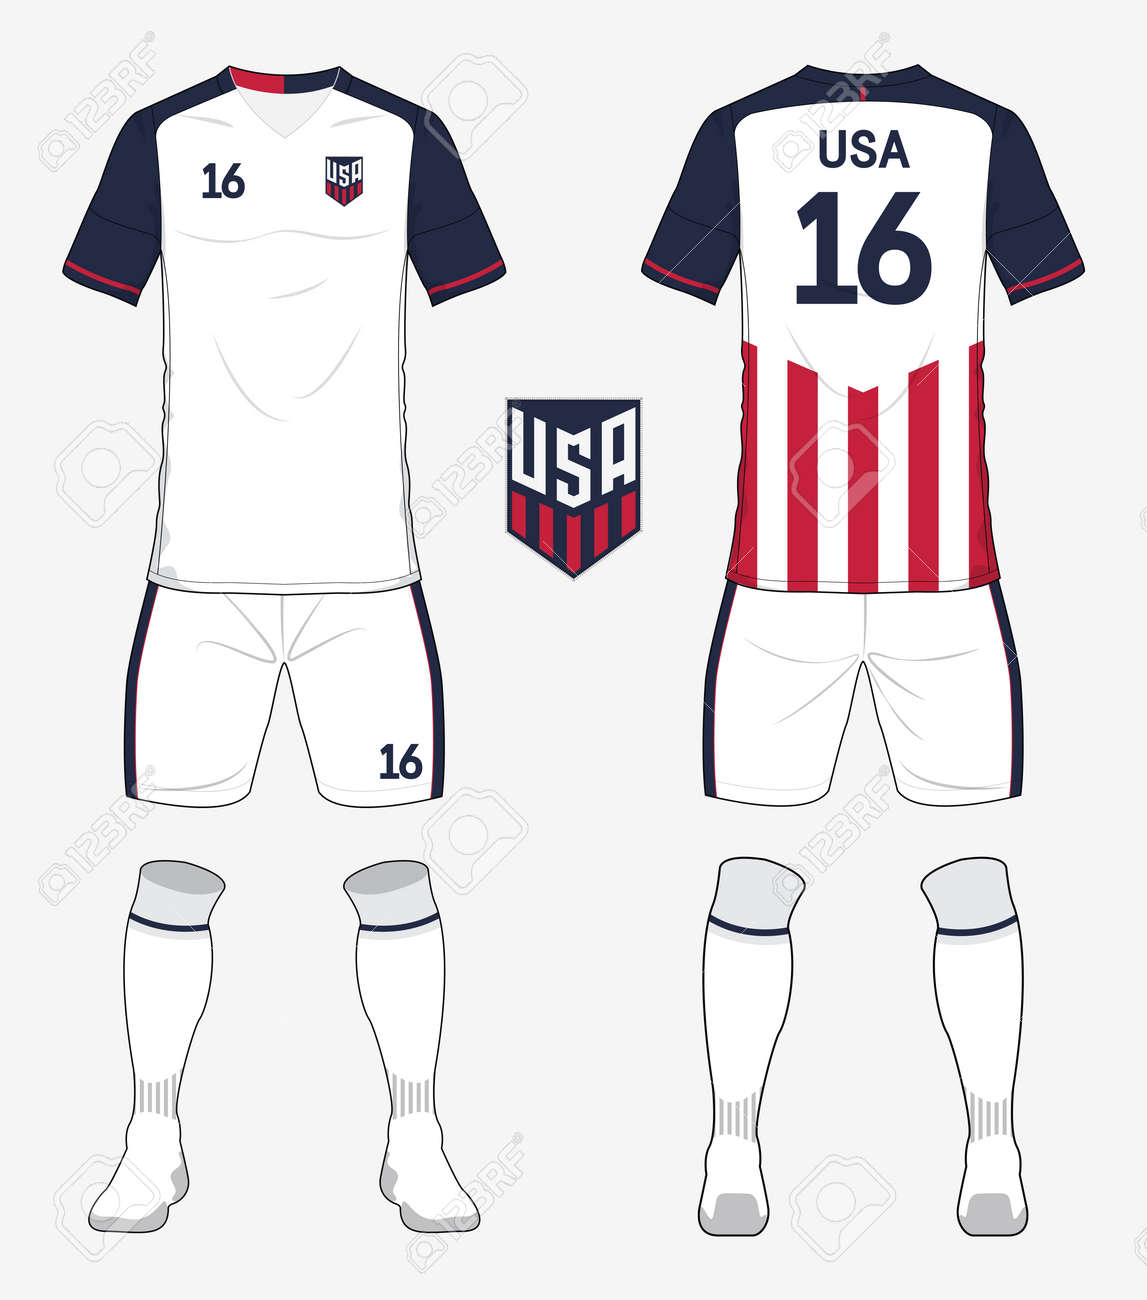 Set Of United States America Soccer Kit Or Football Jersey Template For Club